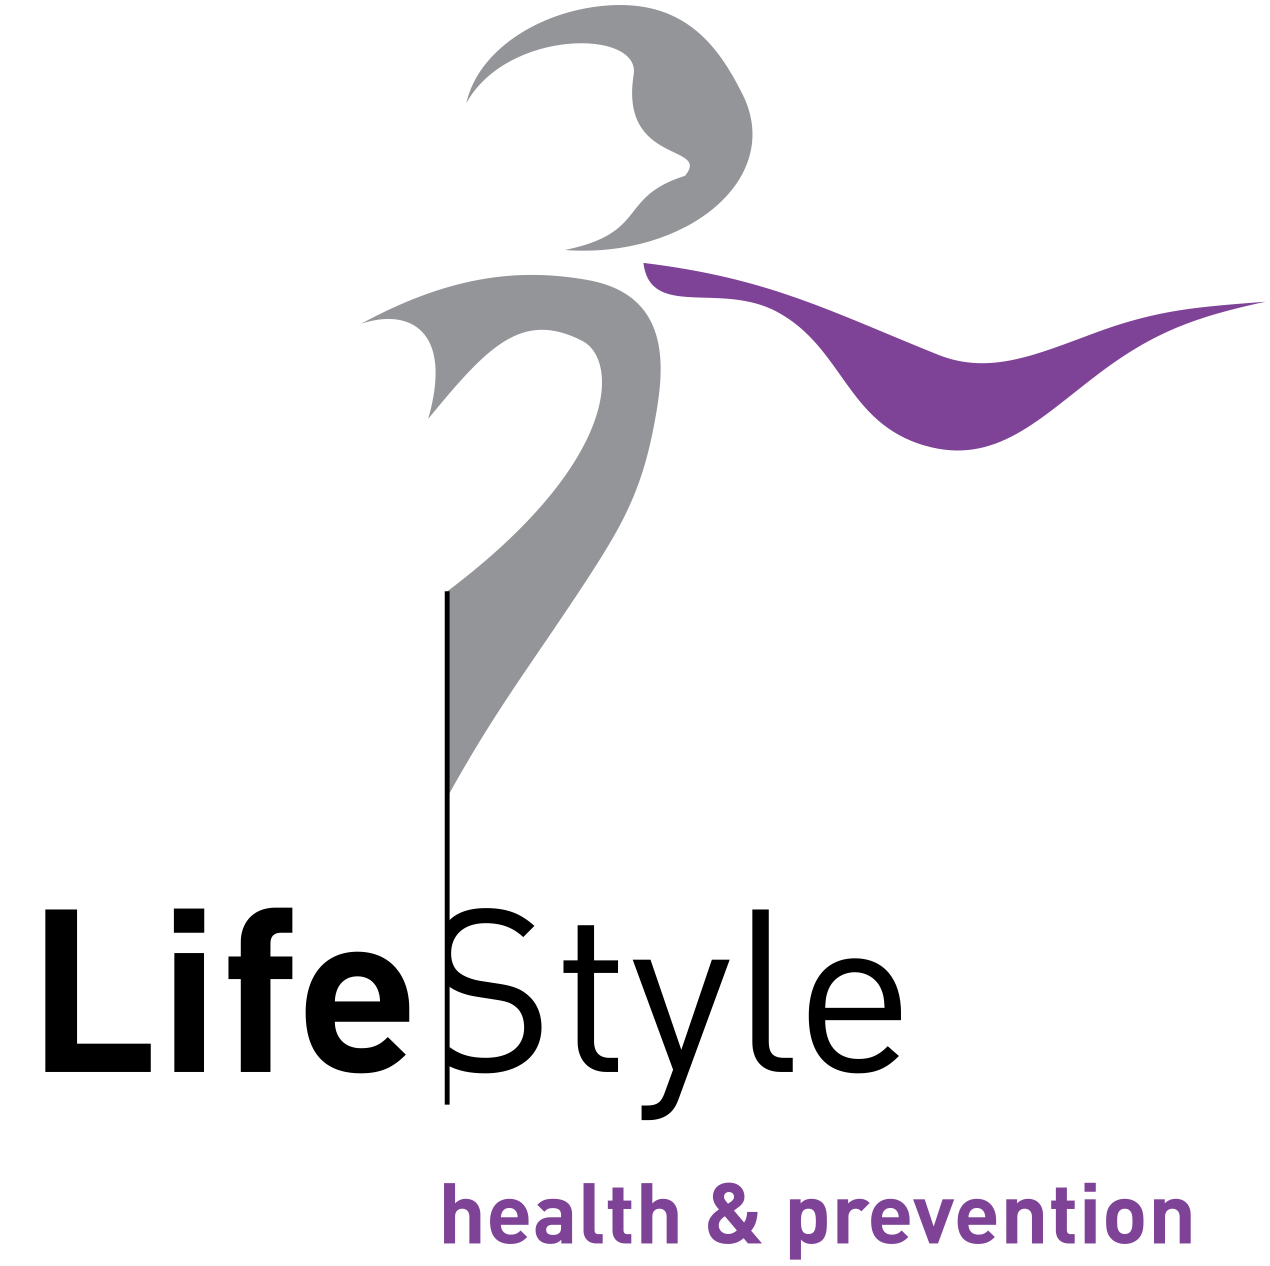 Life Style health & prevention